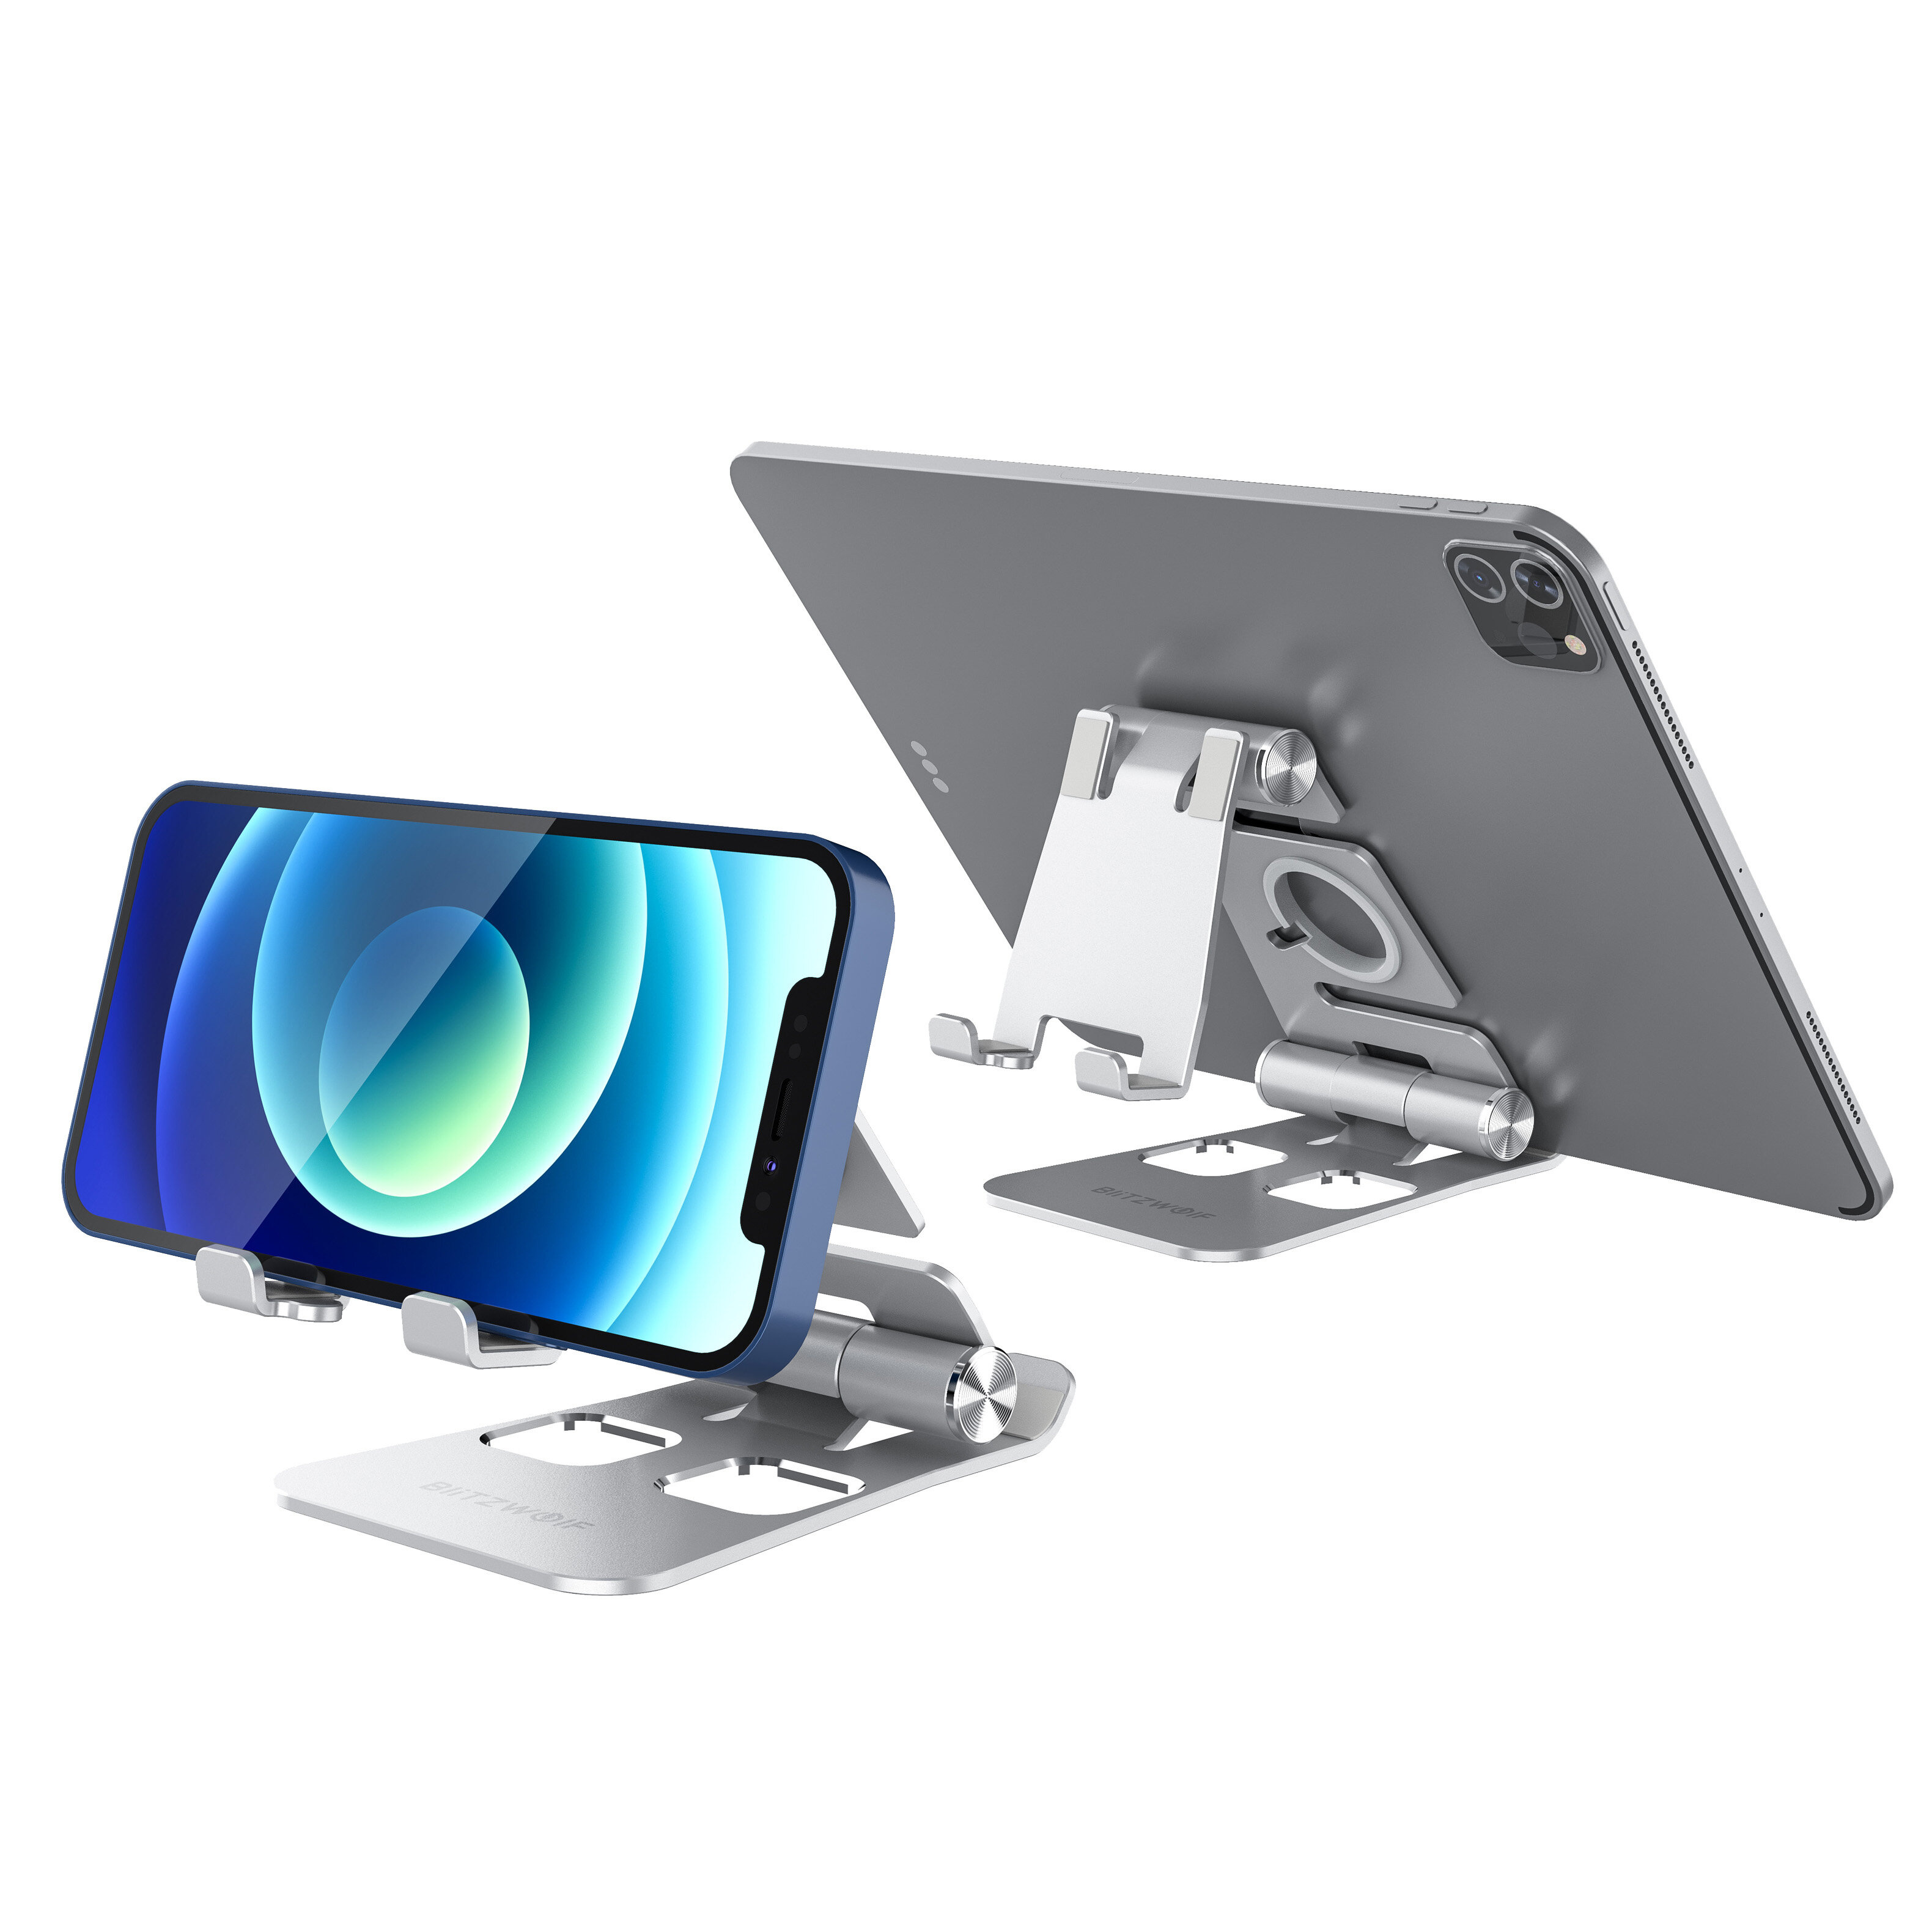 BlitzWolf® BW-TS4 3 in 1 Tablet/Phone Holder Portable Foldable Online Learning Live Streaming Desktop Stand Watch Tablet Phone Holder For iPhone 12 Poco For Samsung Galaxy S21 X3 NFC